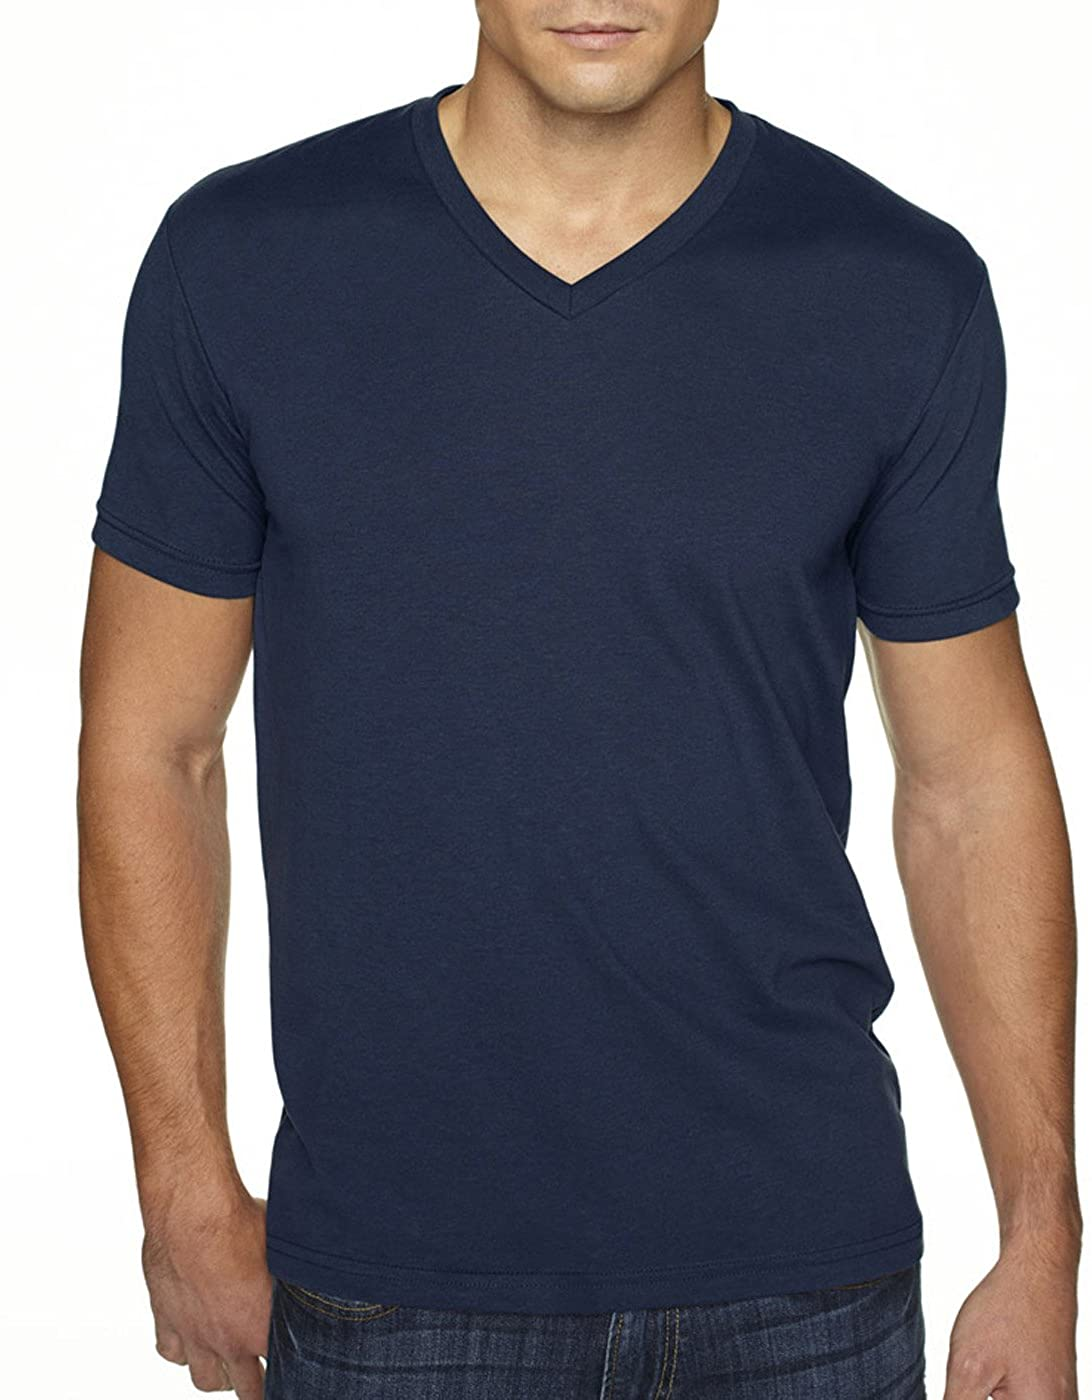 Next Level Apparel 6440 Mens Premium Fitted Sueded V-Neck Tee -2 Pack, Midnight Navy + Black (2 Shirts) - Large